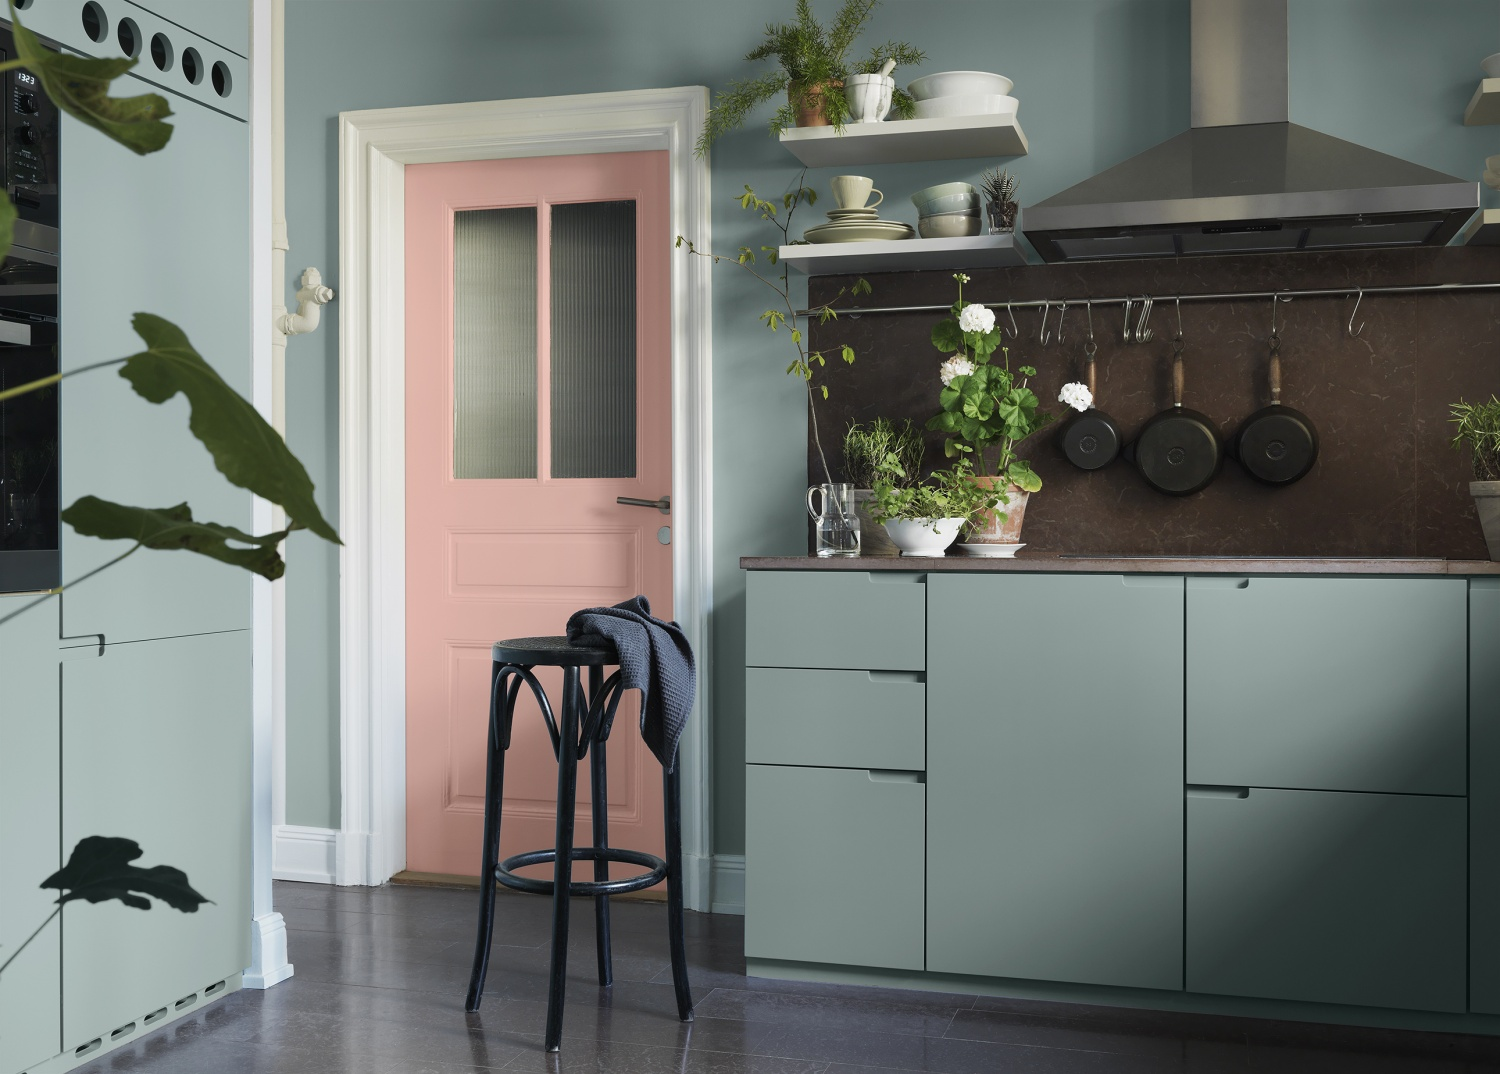 I think the cabinets are already on the neutral side in this kitchen, but in combination with that pink door it just elevates this kitchen into something special | design by  Saša Antić